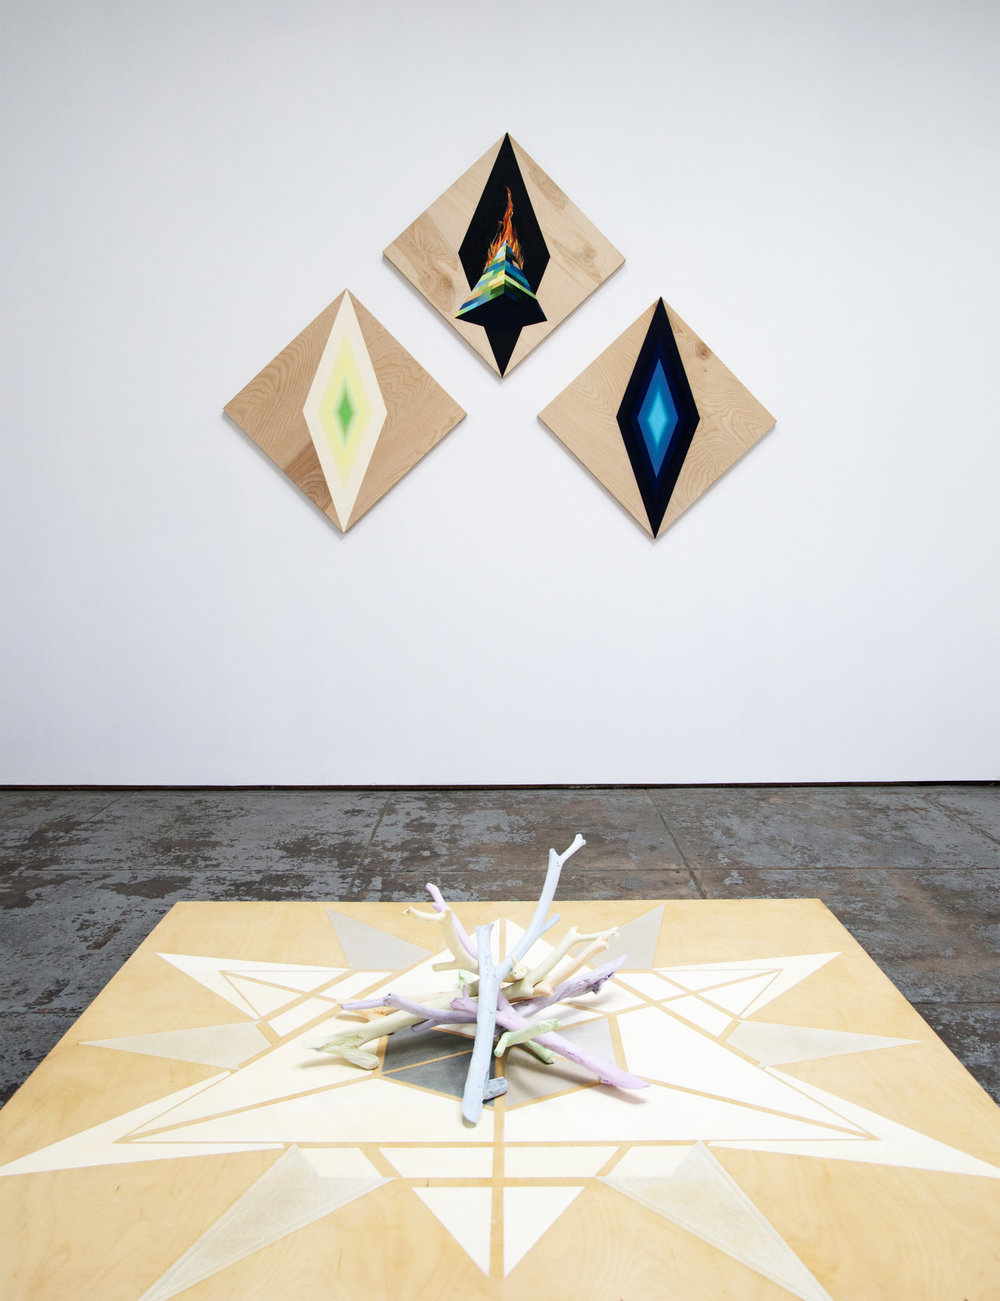 Obelisk on fire (Triptych) and Dodecagram floor painting & Bundle of cast branches